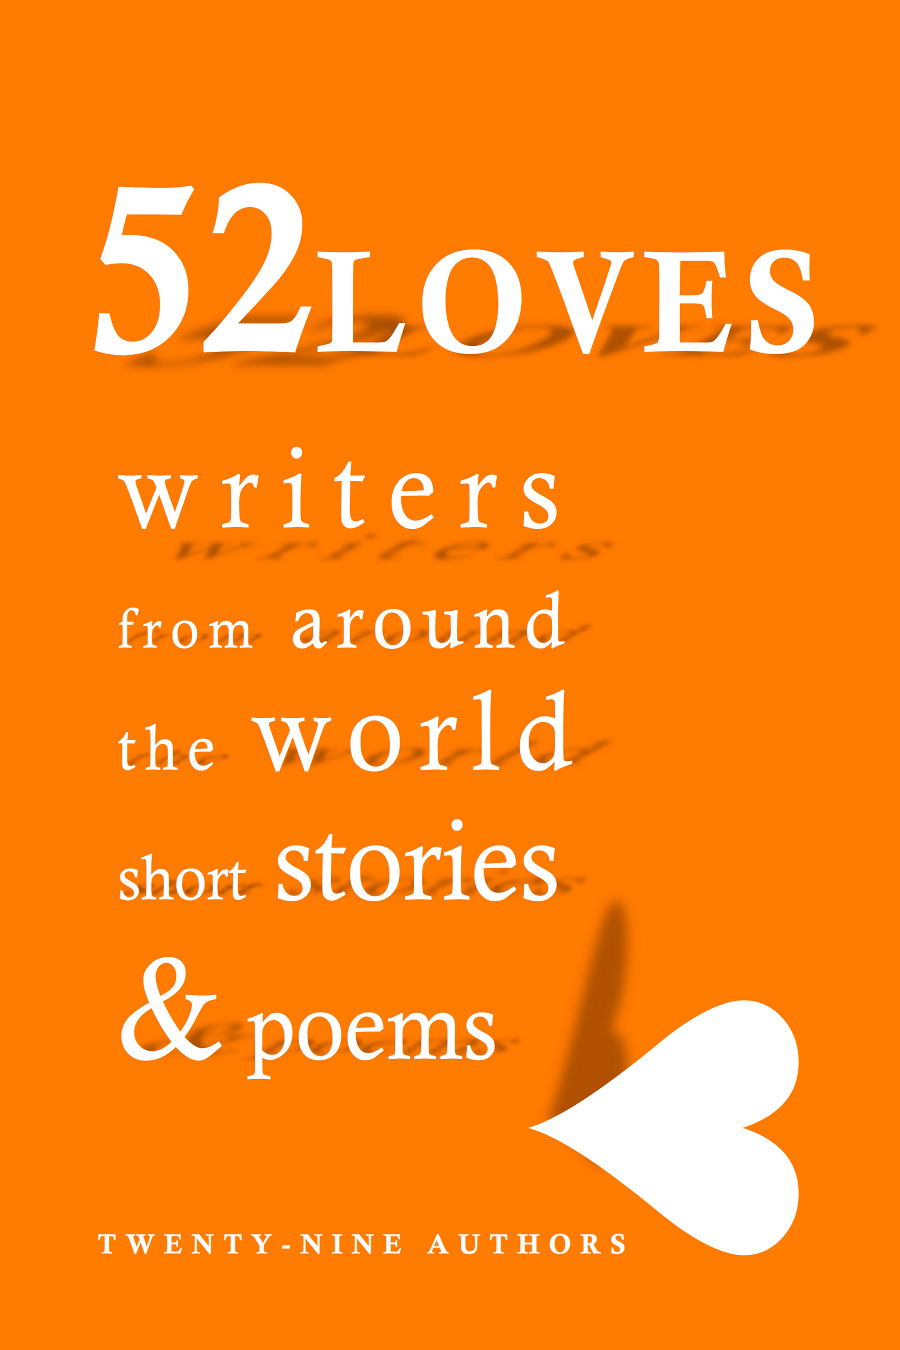 52LOVES: 29 authors from around the world